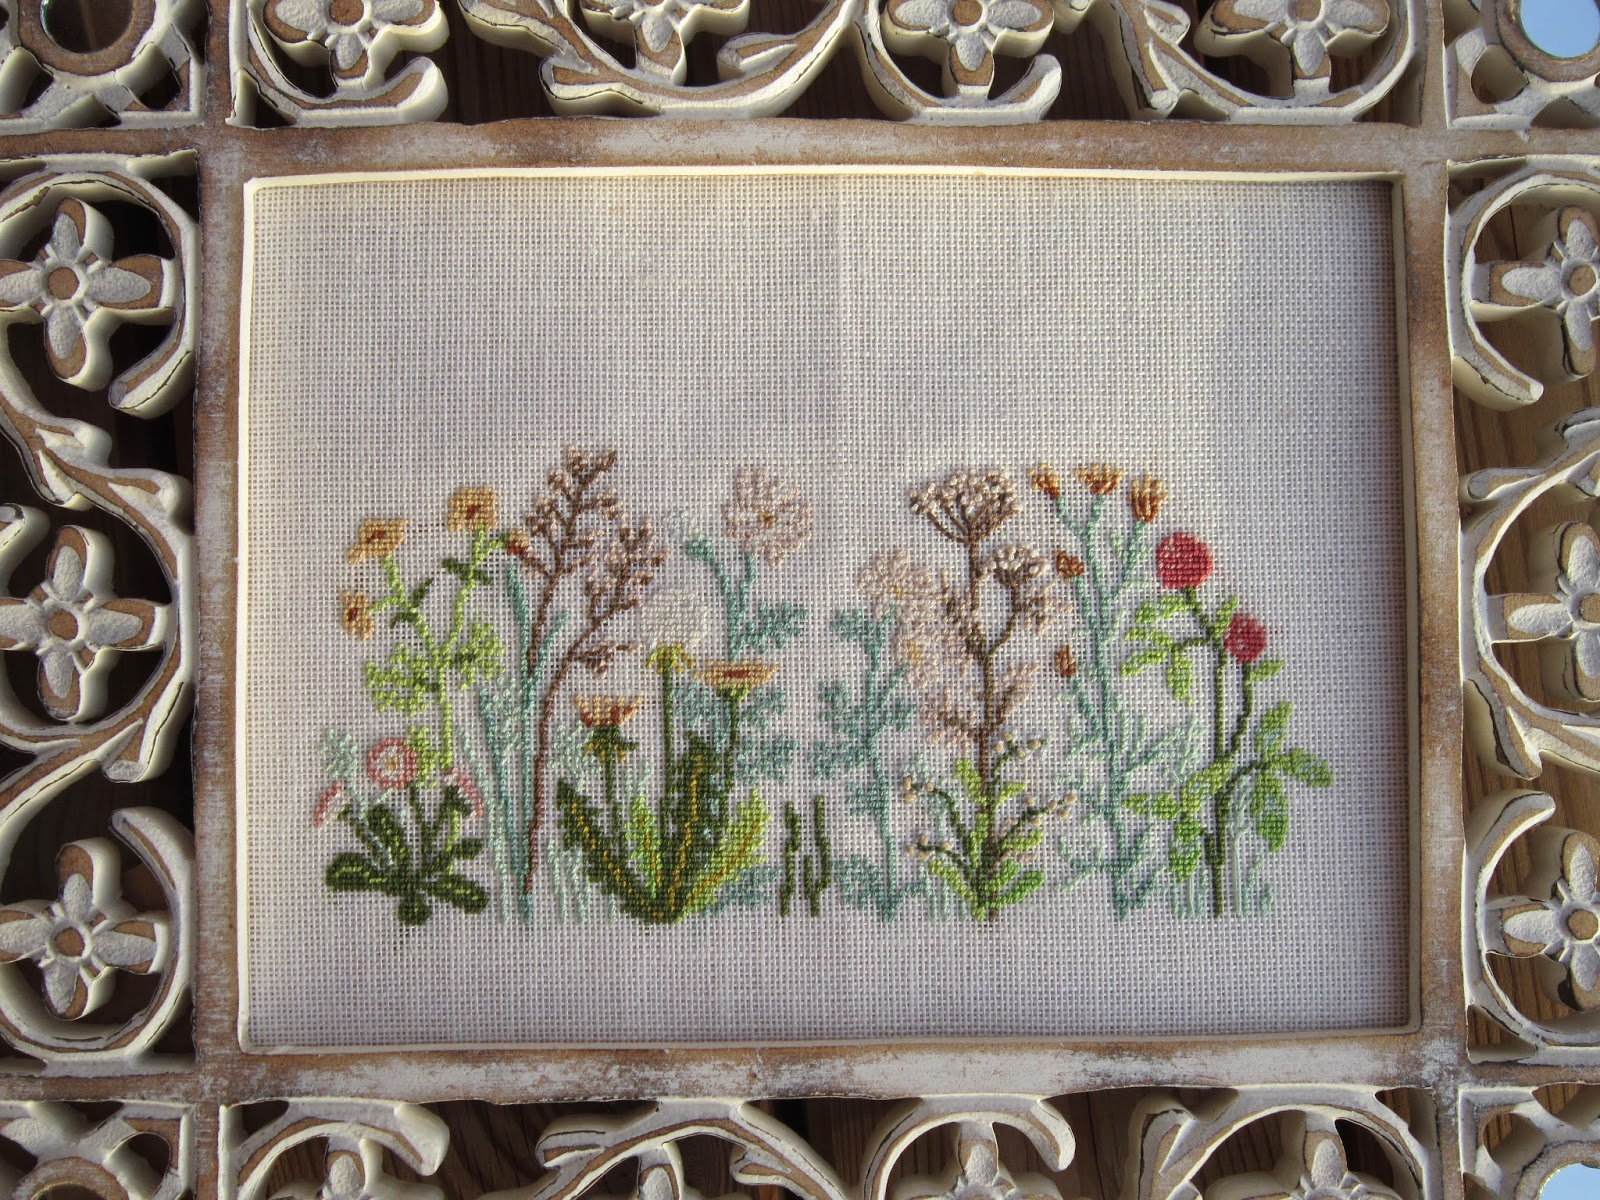 bordado, punto cruz, broderie, point croix, stitching, cross stitch